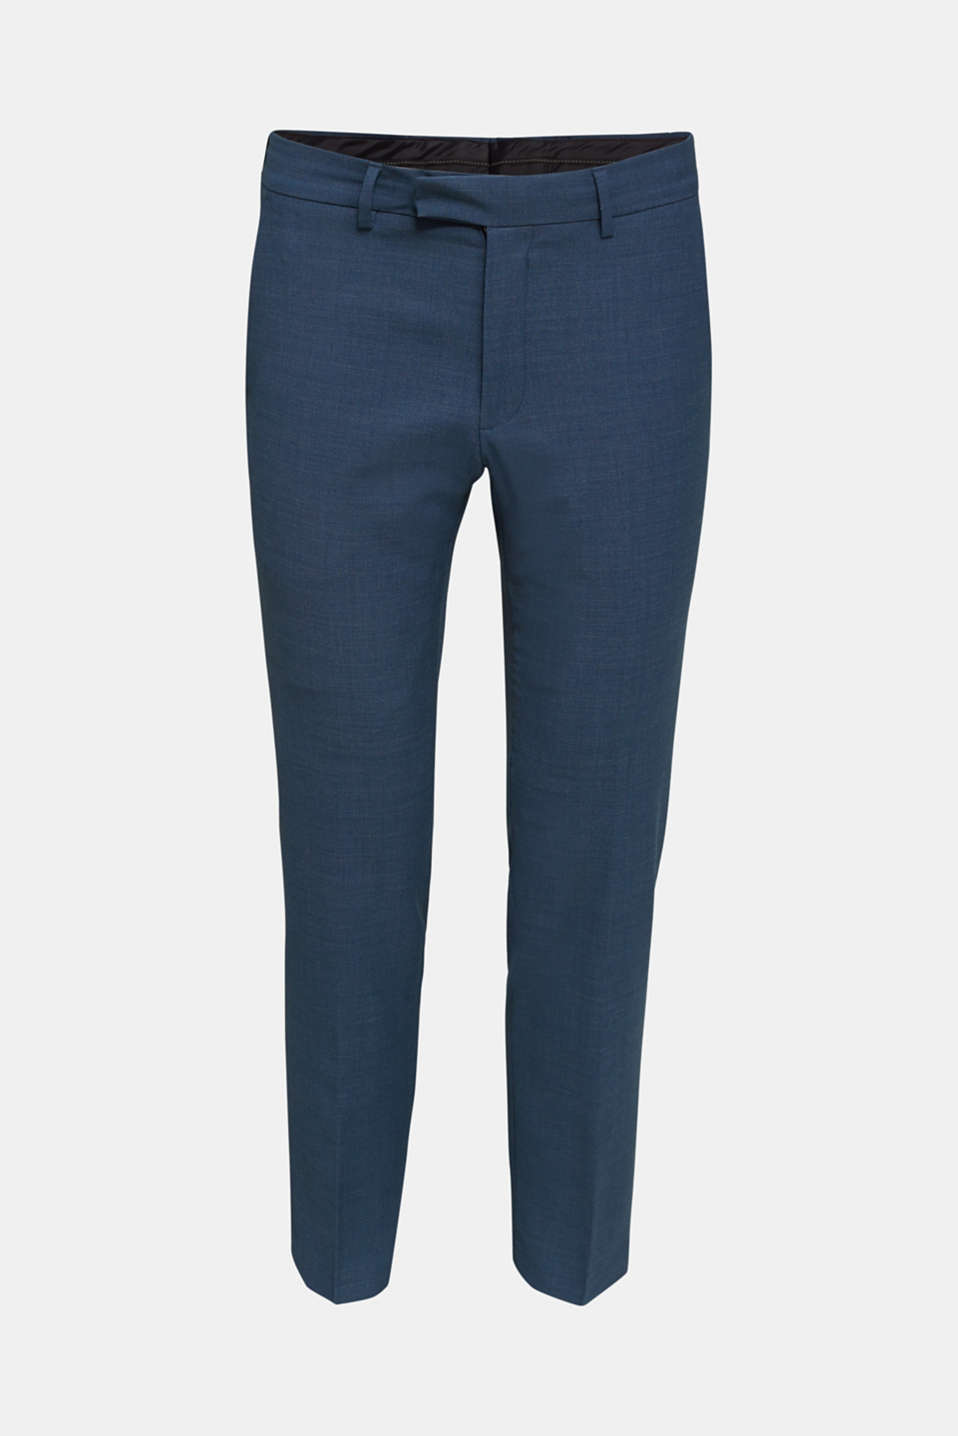 BLUE WOOL mix + match: Trousers, BLUE 5, detail image number 6